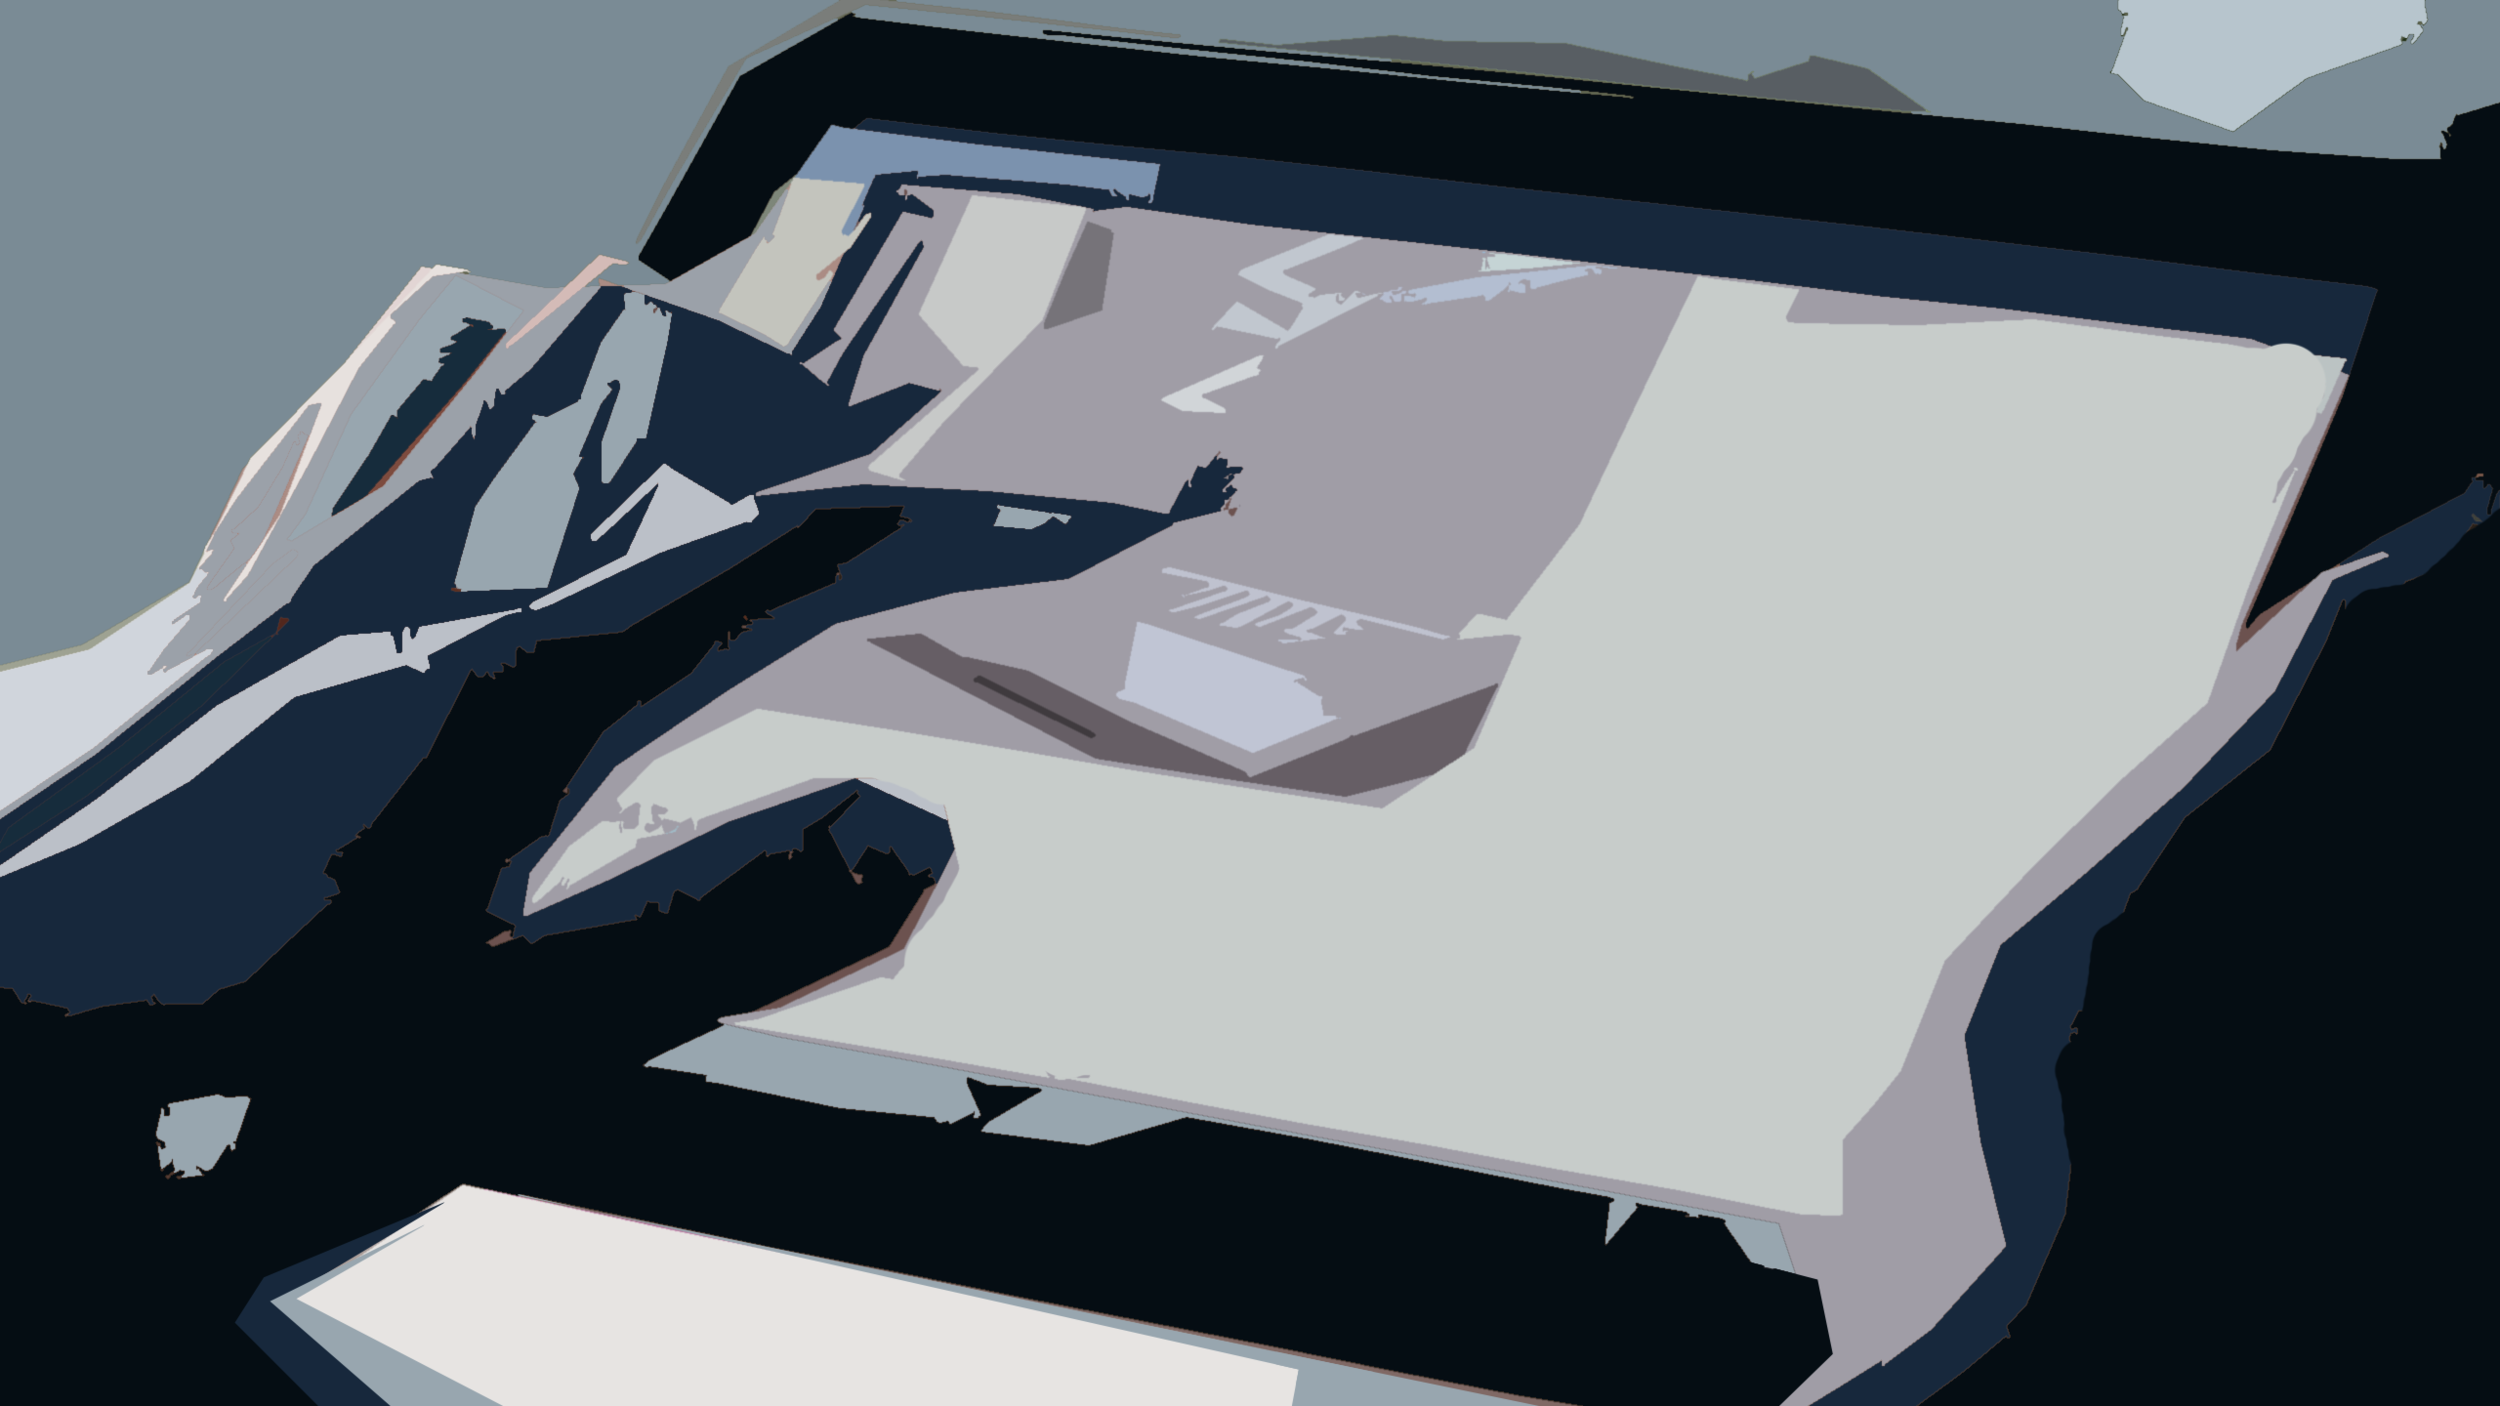 He grabs a large rectangular screen, so thin like paper, and starts to touch the metal body